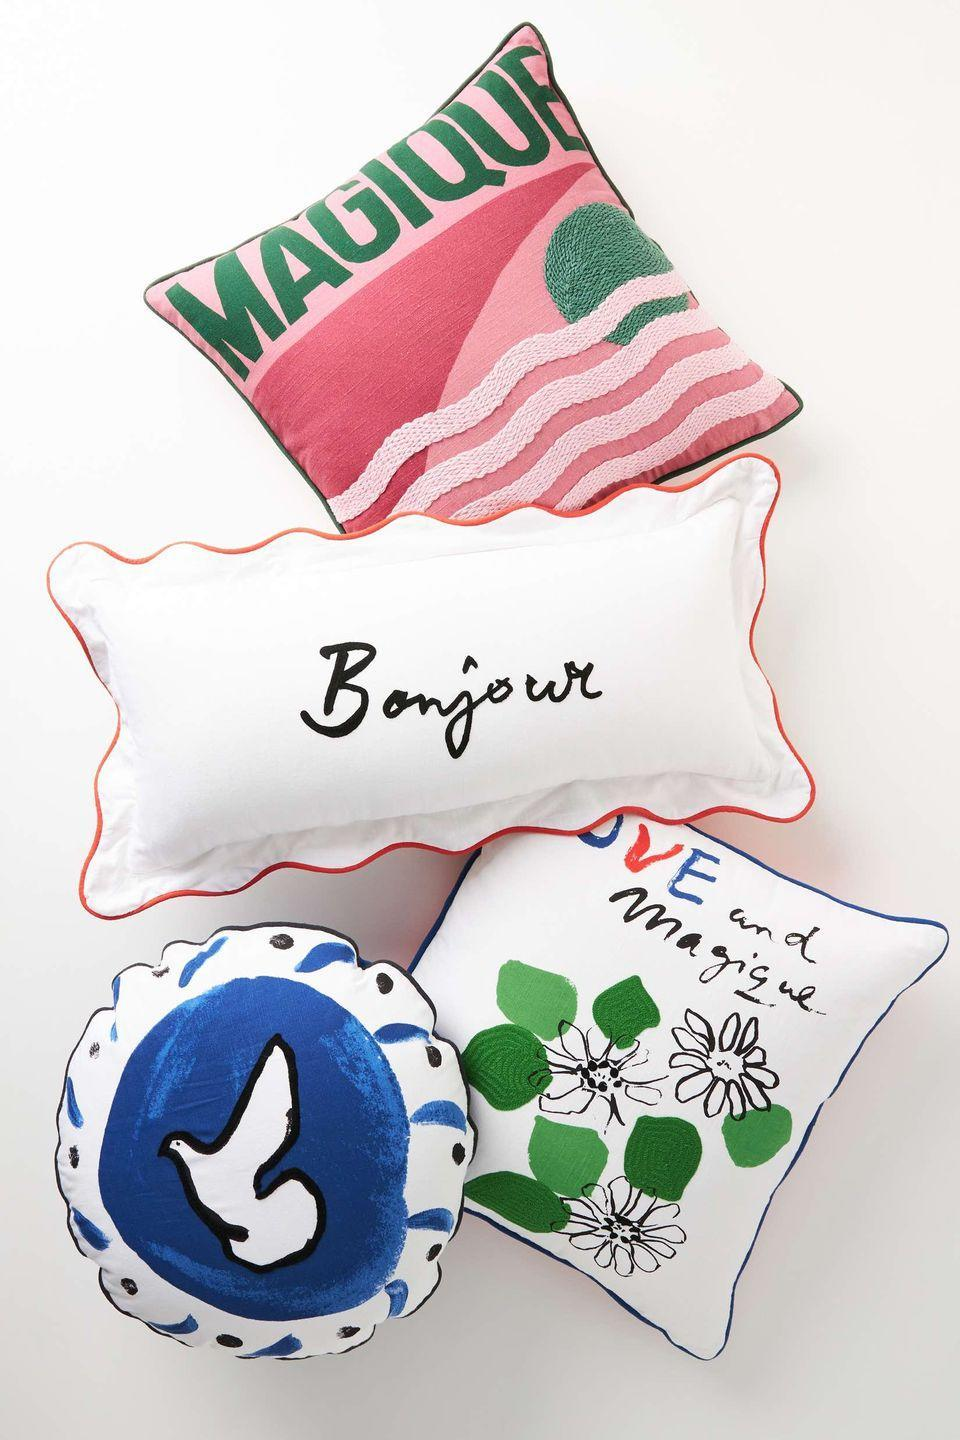 """<p>These cushions are the result of a collaboration between graphic designer Milou Neelen's Hotel Magique label and Anthropologie. The collection comprises tableware, posters, textiles, candles in wonderfully retro designs inspired by hotels – many feature words of positive affirmation in a charmingly loose handwriting. Cushions from £48, <a href=""""https://www.anthropologie.com/en-gb/brands/hotel-magique"""" rel=""""nofollow noopener"""" target=""""_blank"""" data-ylk=""""slk:anthropologie.com"""" class=""""link rapid-noclick-resp"""">anthropologie.com</a></p>"""